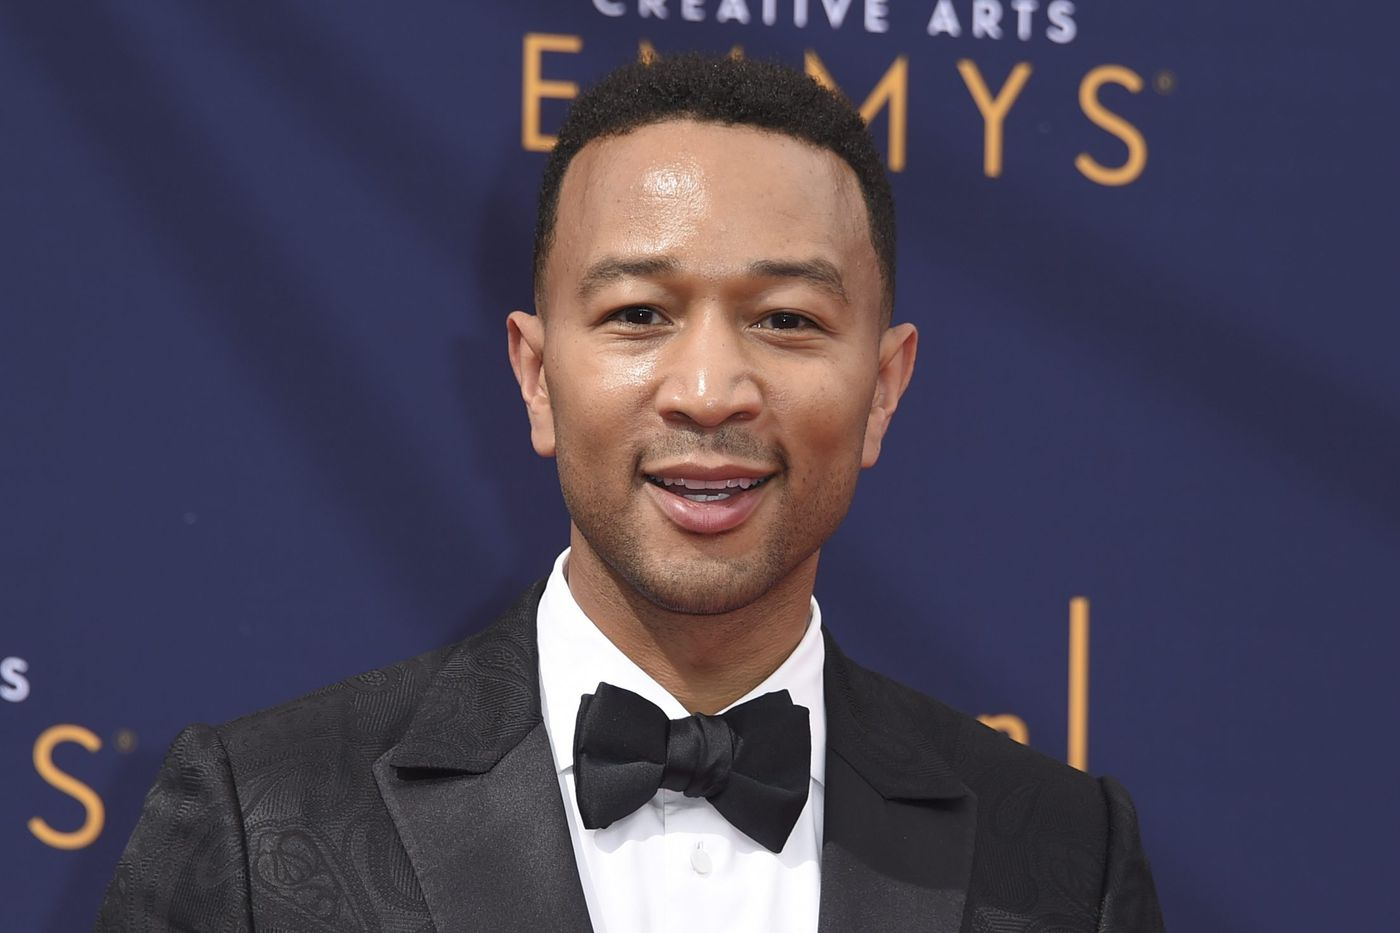 Penn alum John Legend becomes first black man youngest person to win EGOT